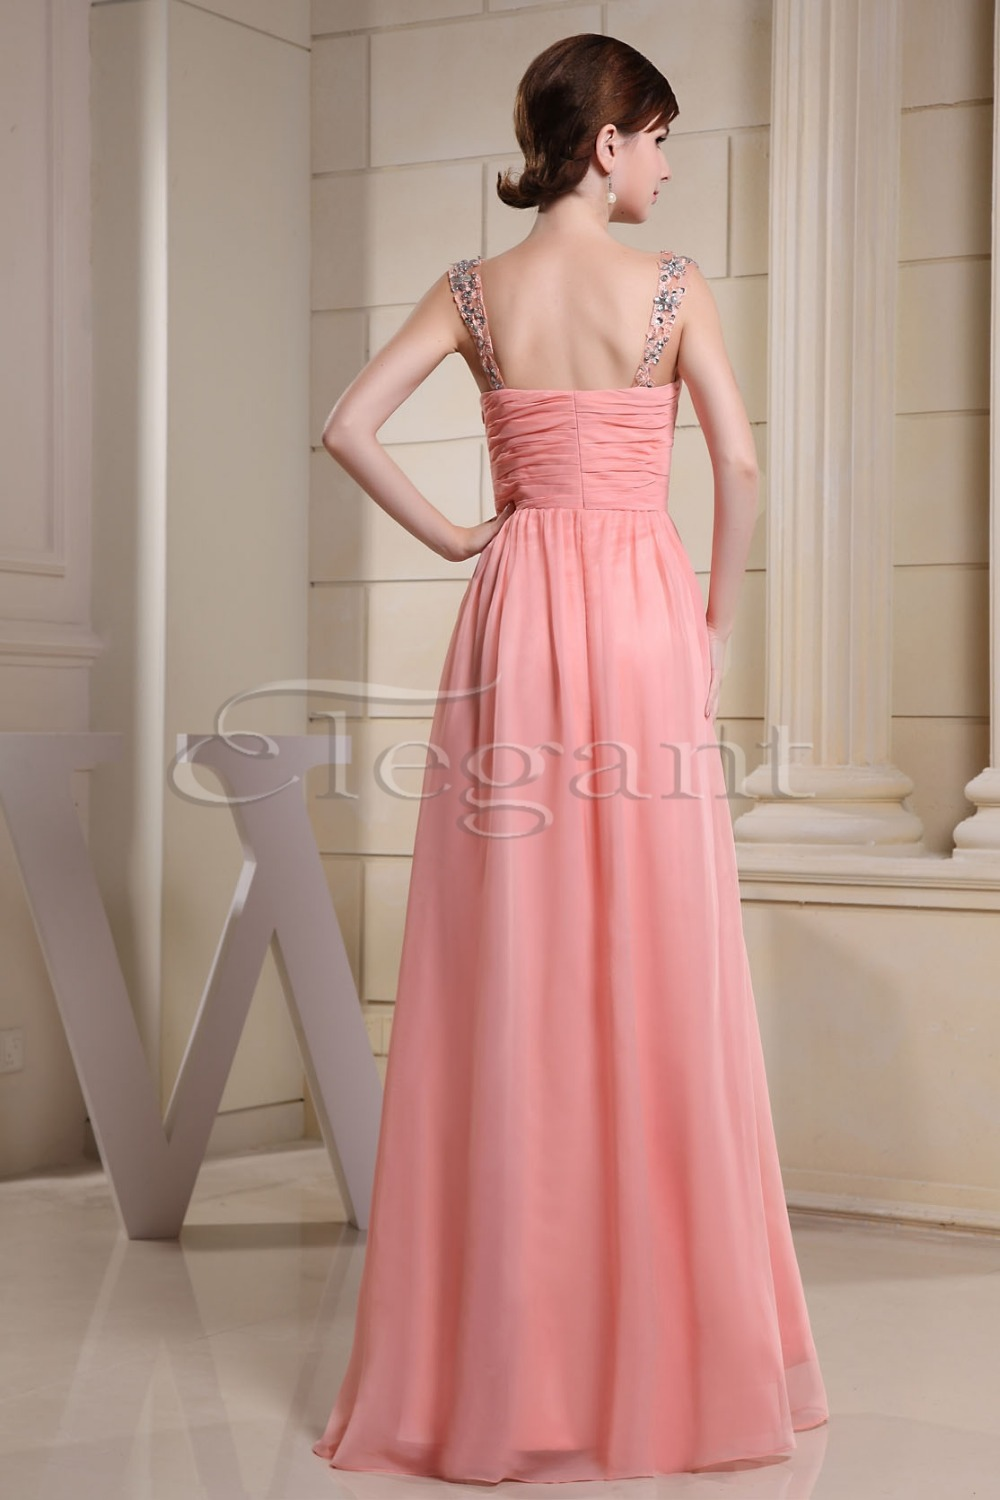 Women Beading Straps Ruched Empire Column Full Length Maxi Chiffon  Bridesmaid Dress 3026-in Bridesmaid Dresses from Weddings   Events on  Aliexpress.com ... 92c5308bd1e3